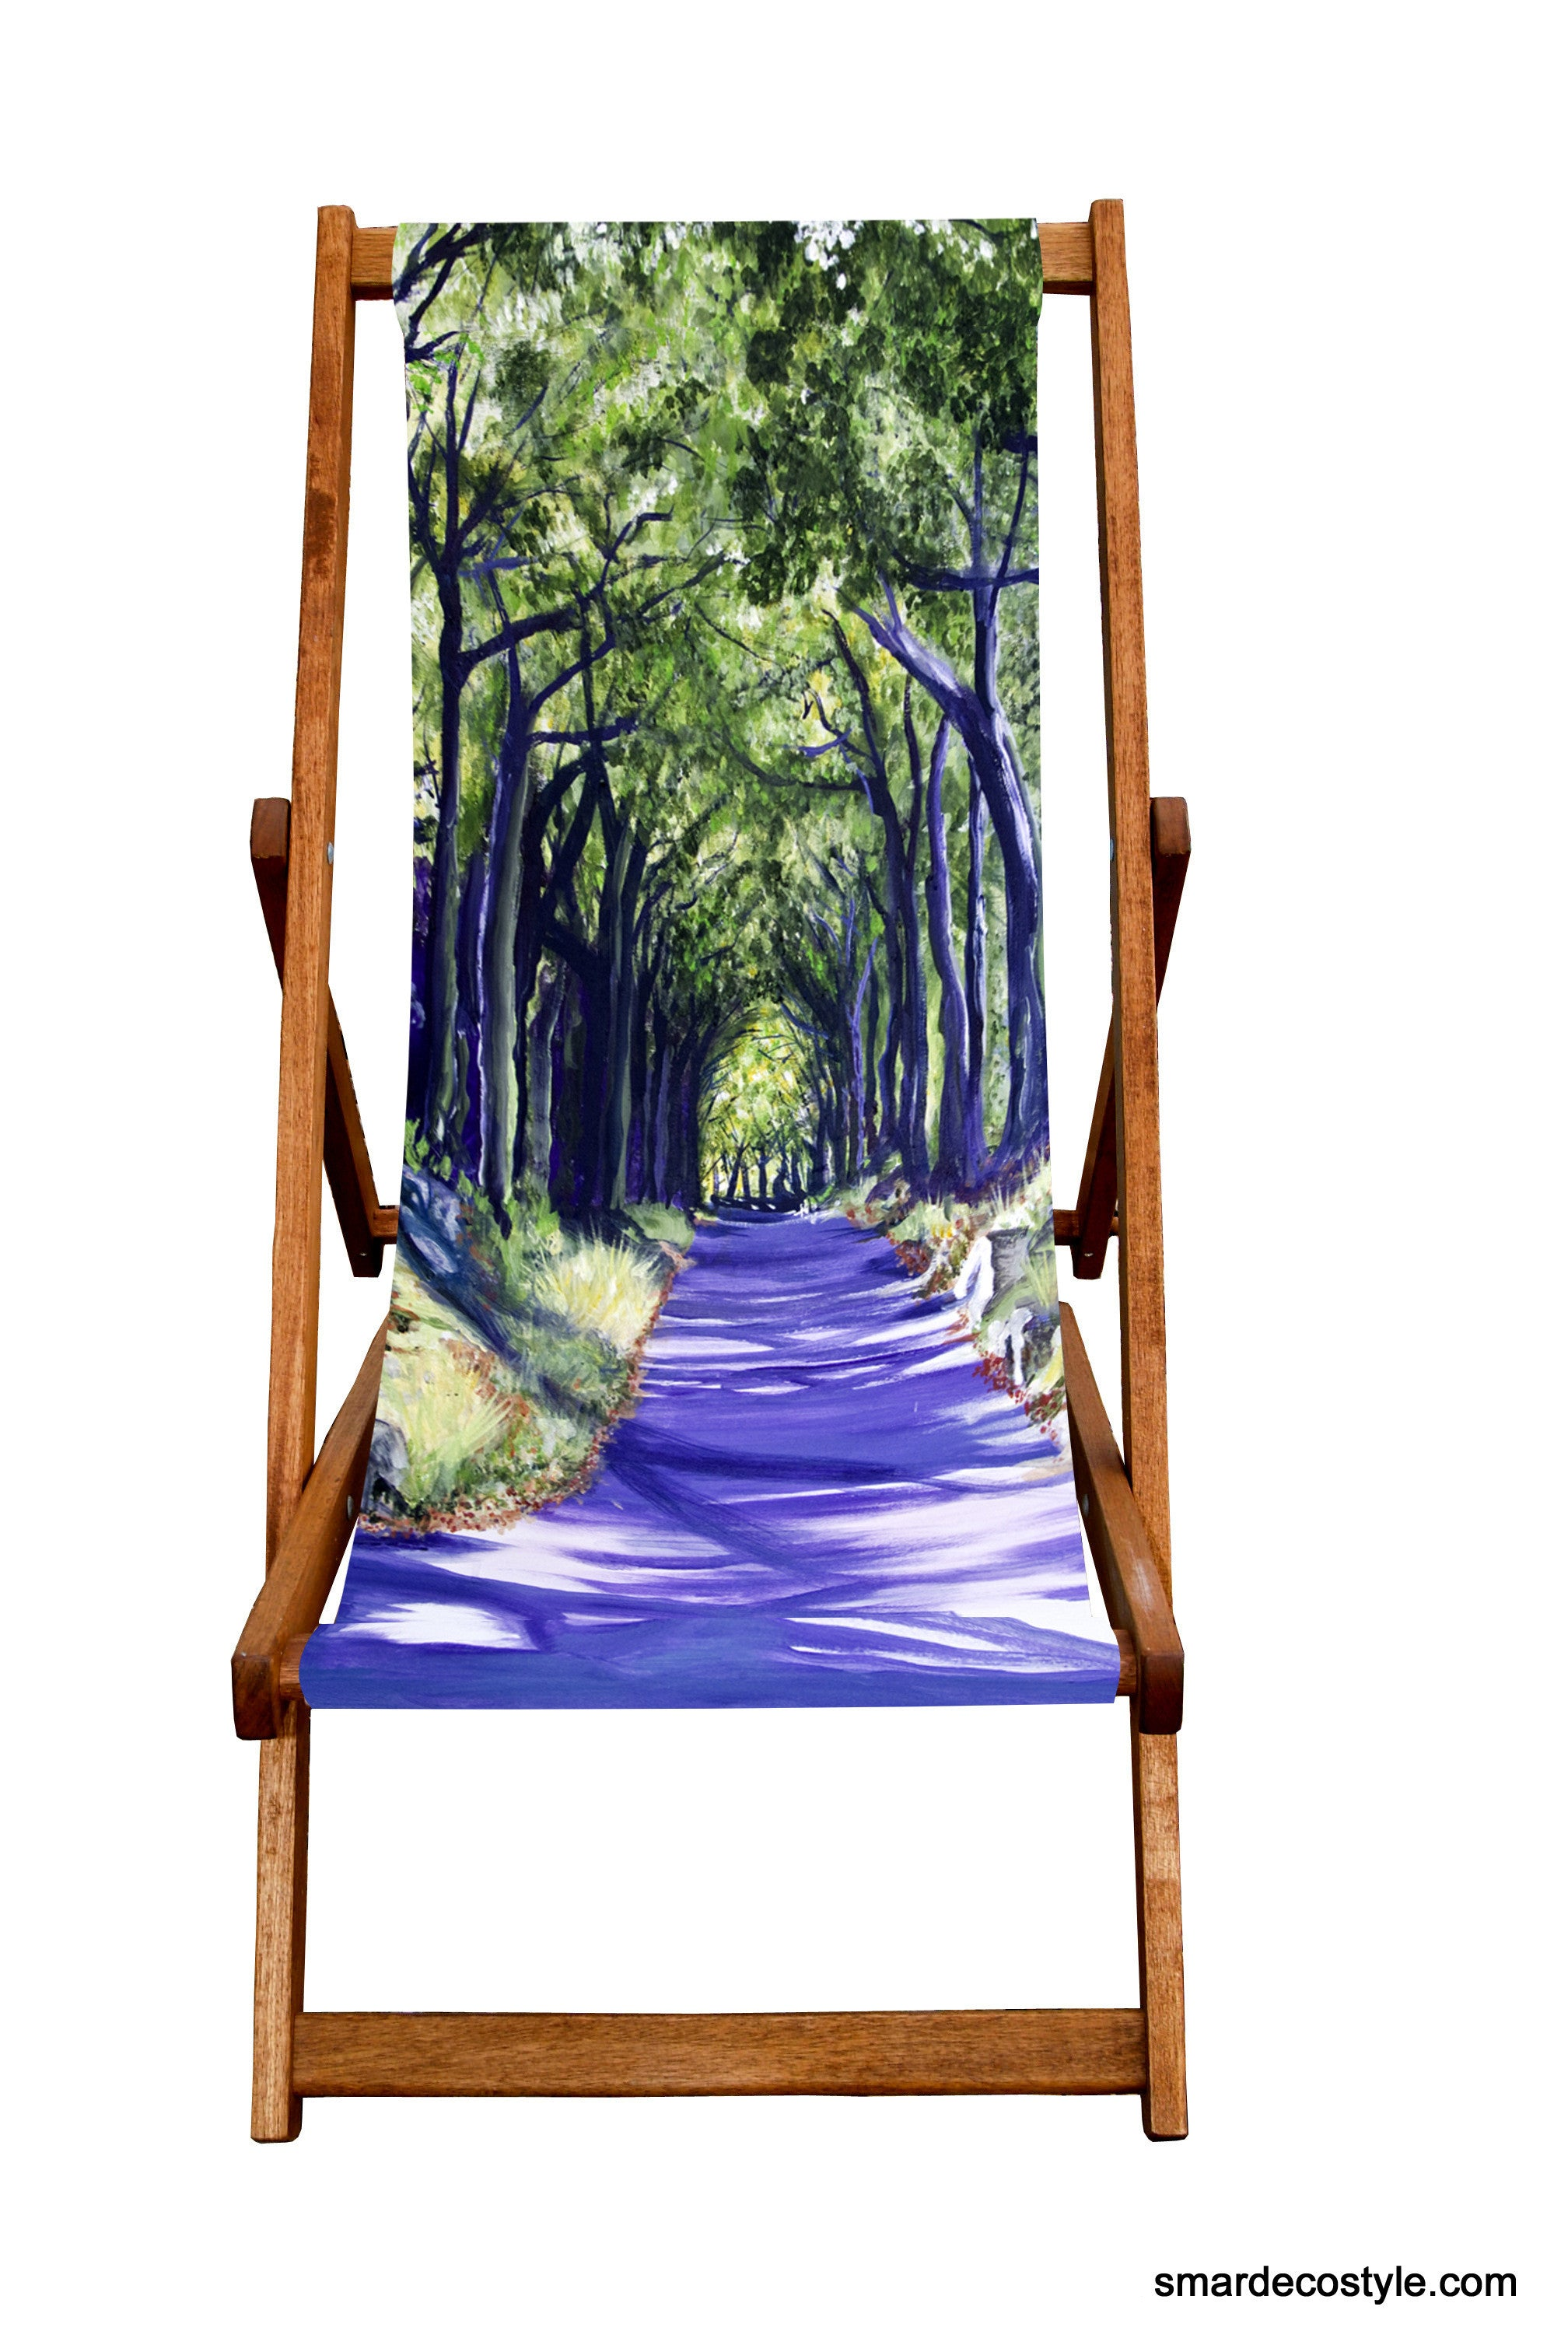 Deckchair - Traditional Seaside  - Country Lane